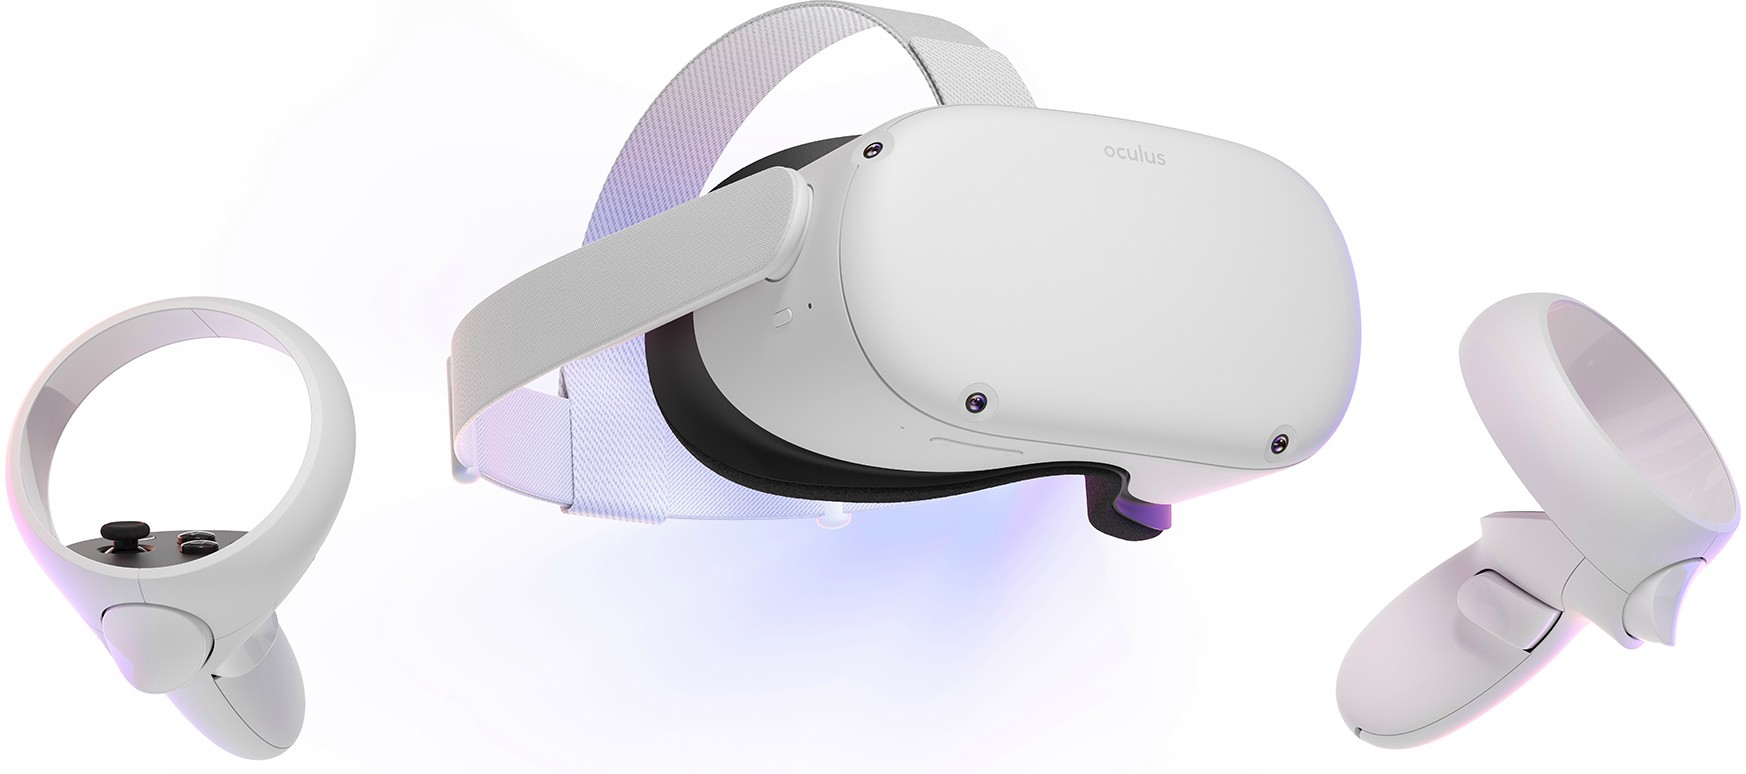 Tai nghe Oculus Quest VR.